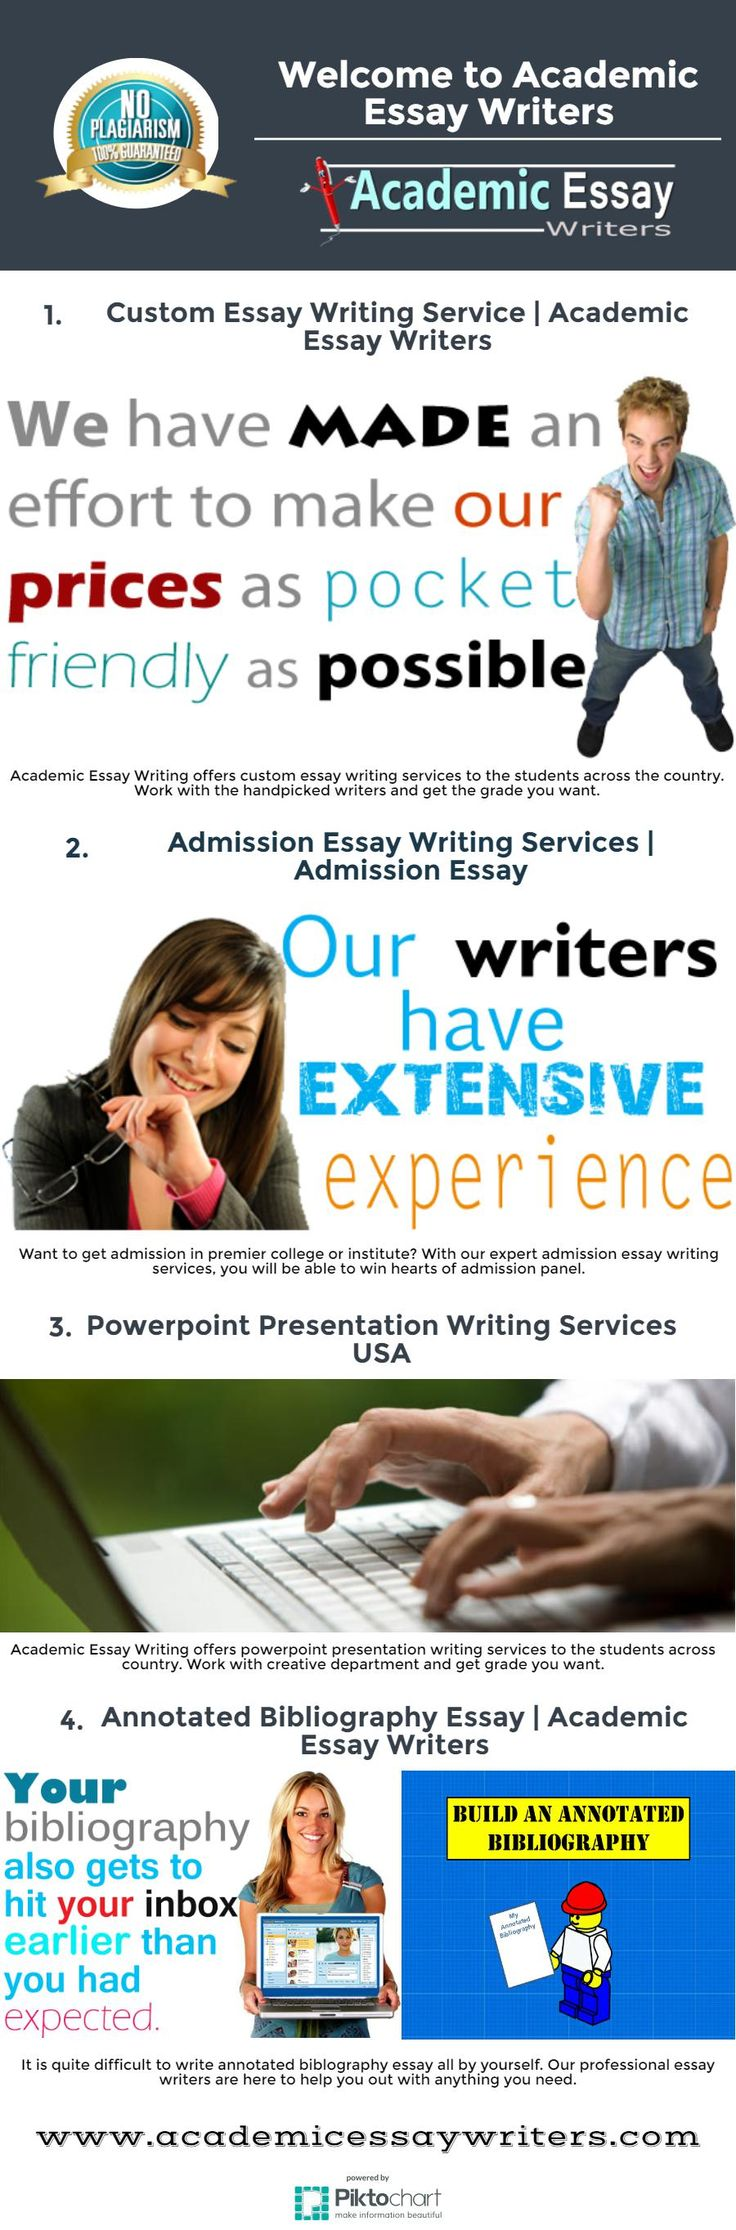 Professional Essay Writing Services offers custom essays, research papers, thesis papers, reports, audits, speeches and dissertations of unrivaled quality composed without any preparation by exceptionally qualified academic writers.